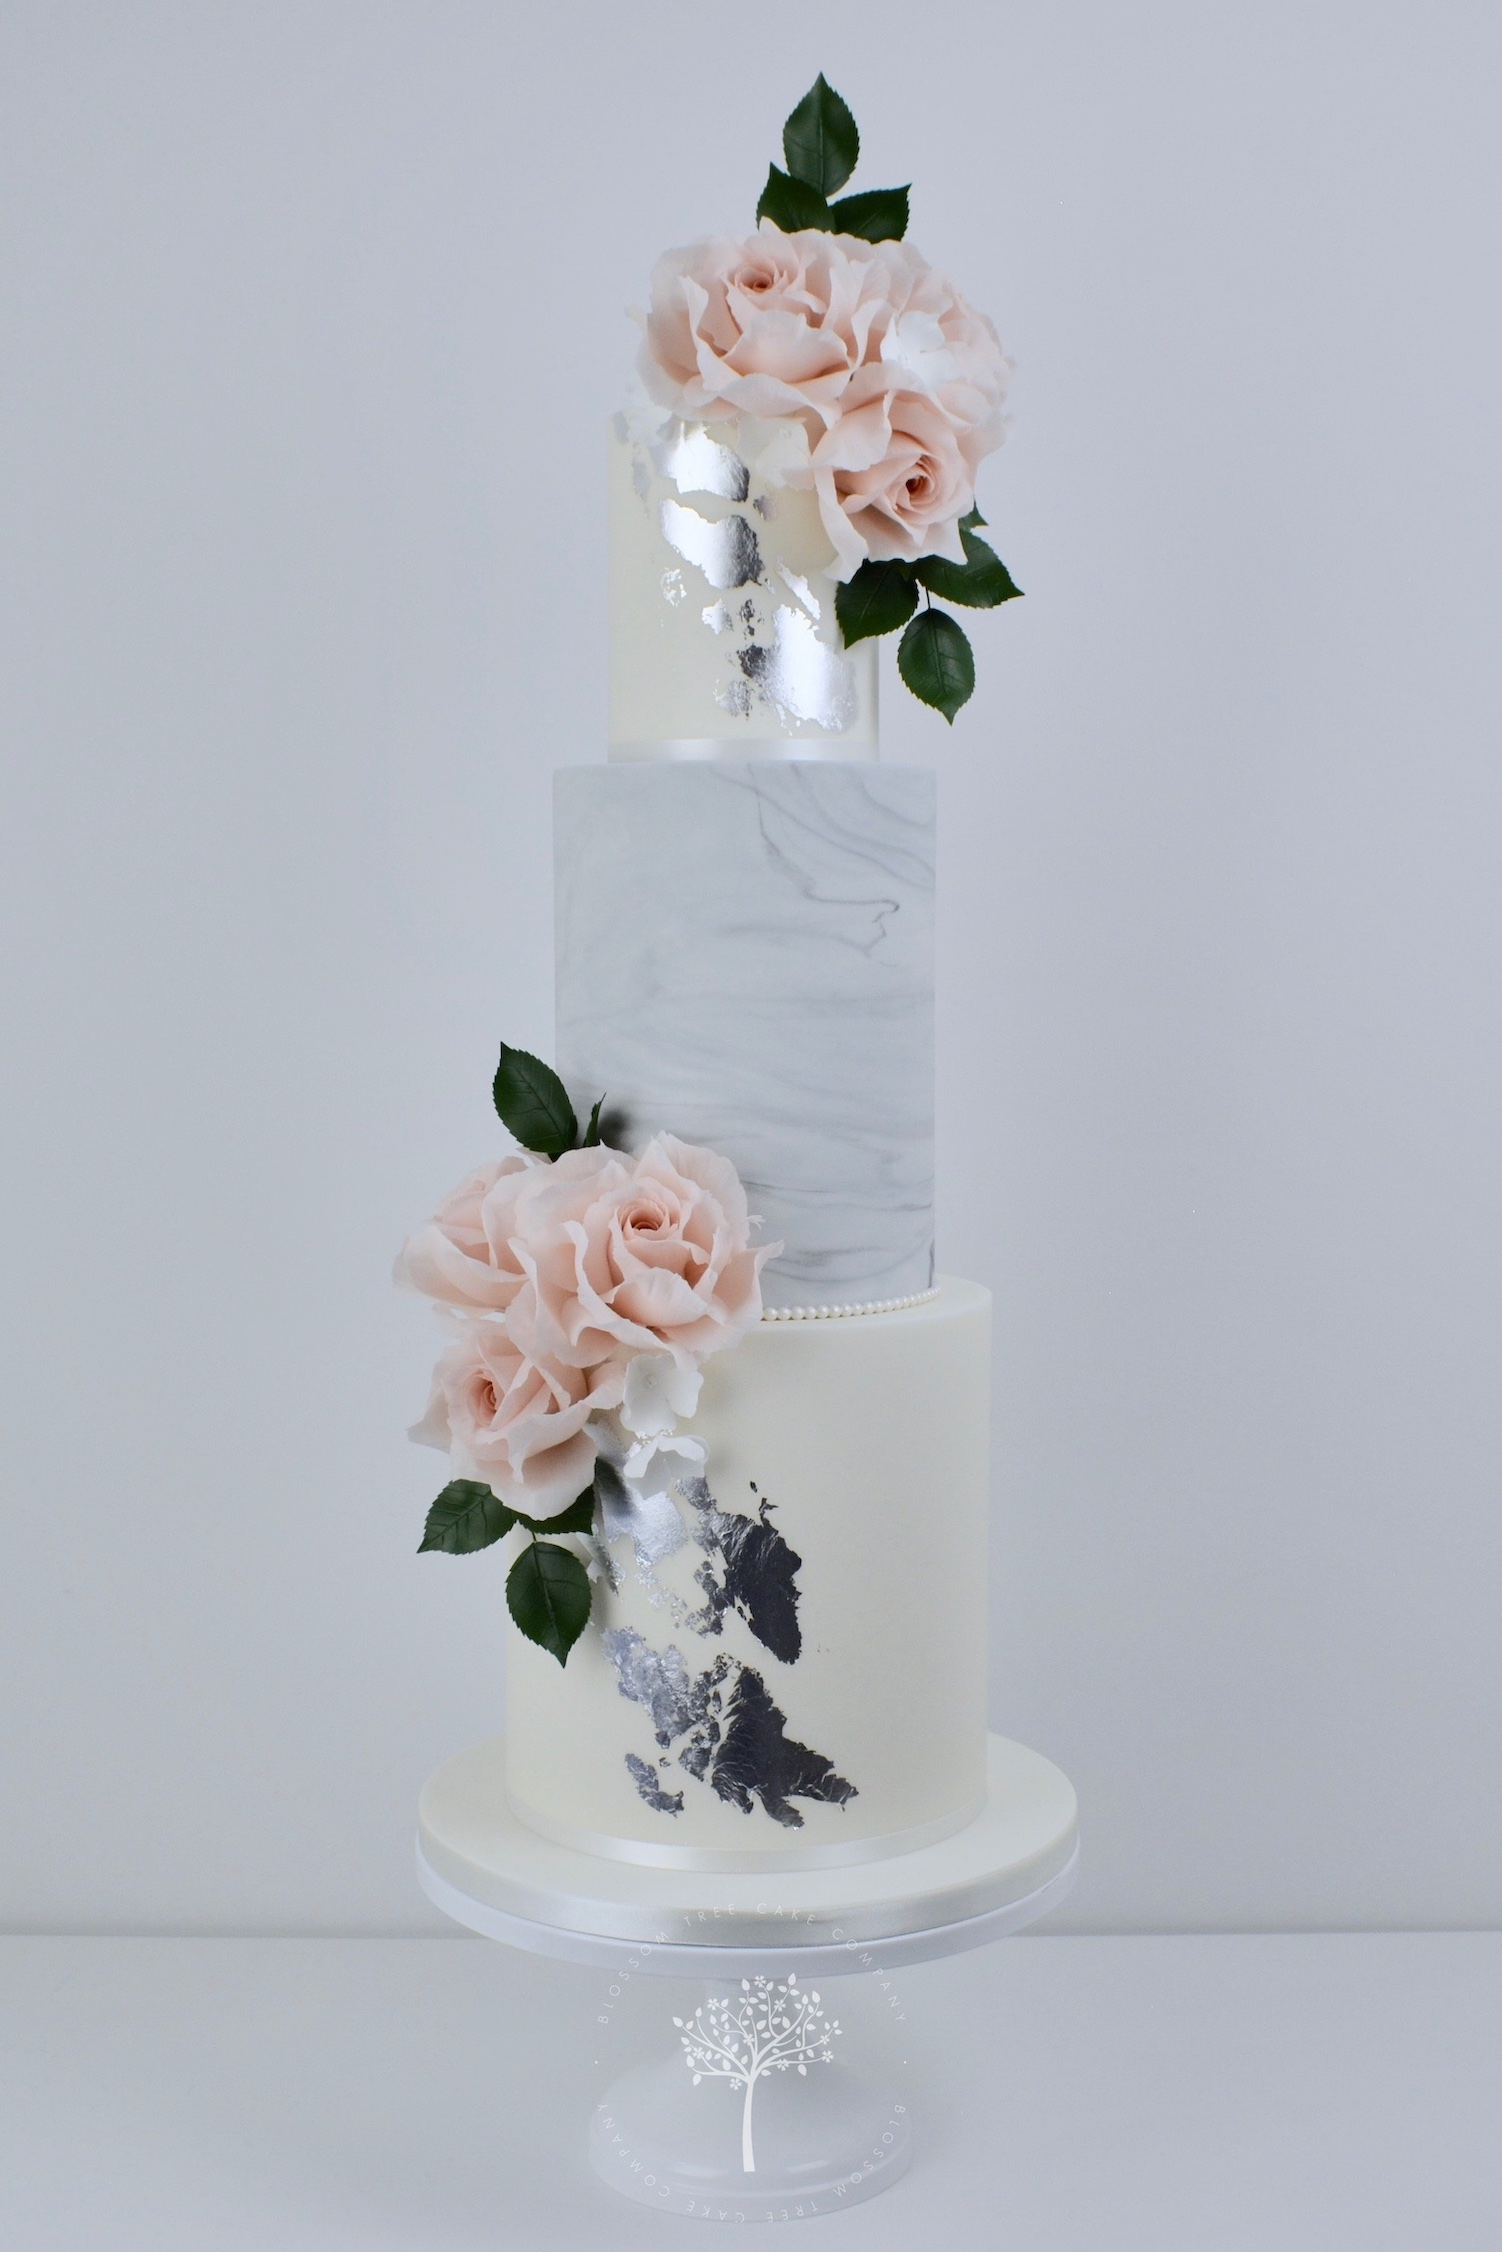 Blush Roses & Silver wedding cake by Blossom Tree Cake Company Harrogate North Yorkshire.jpg